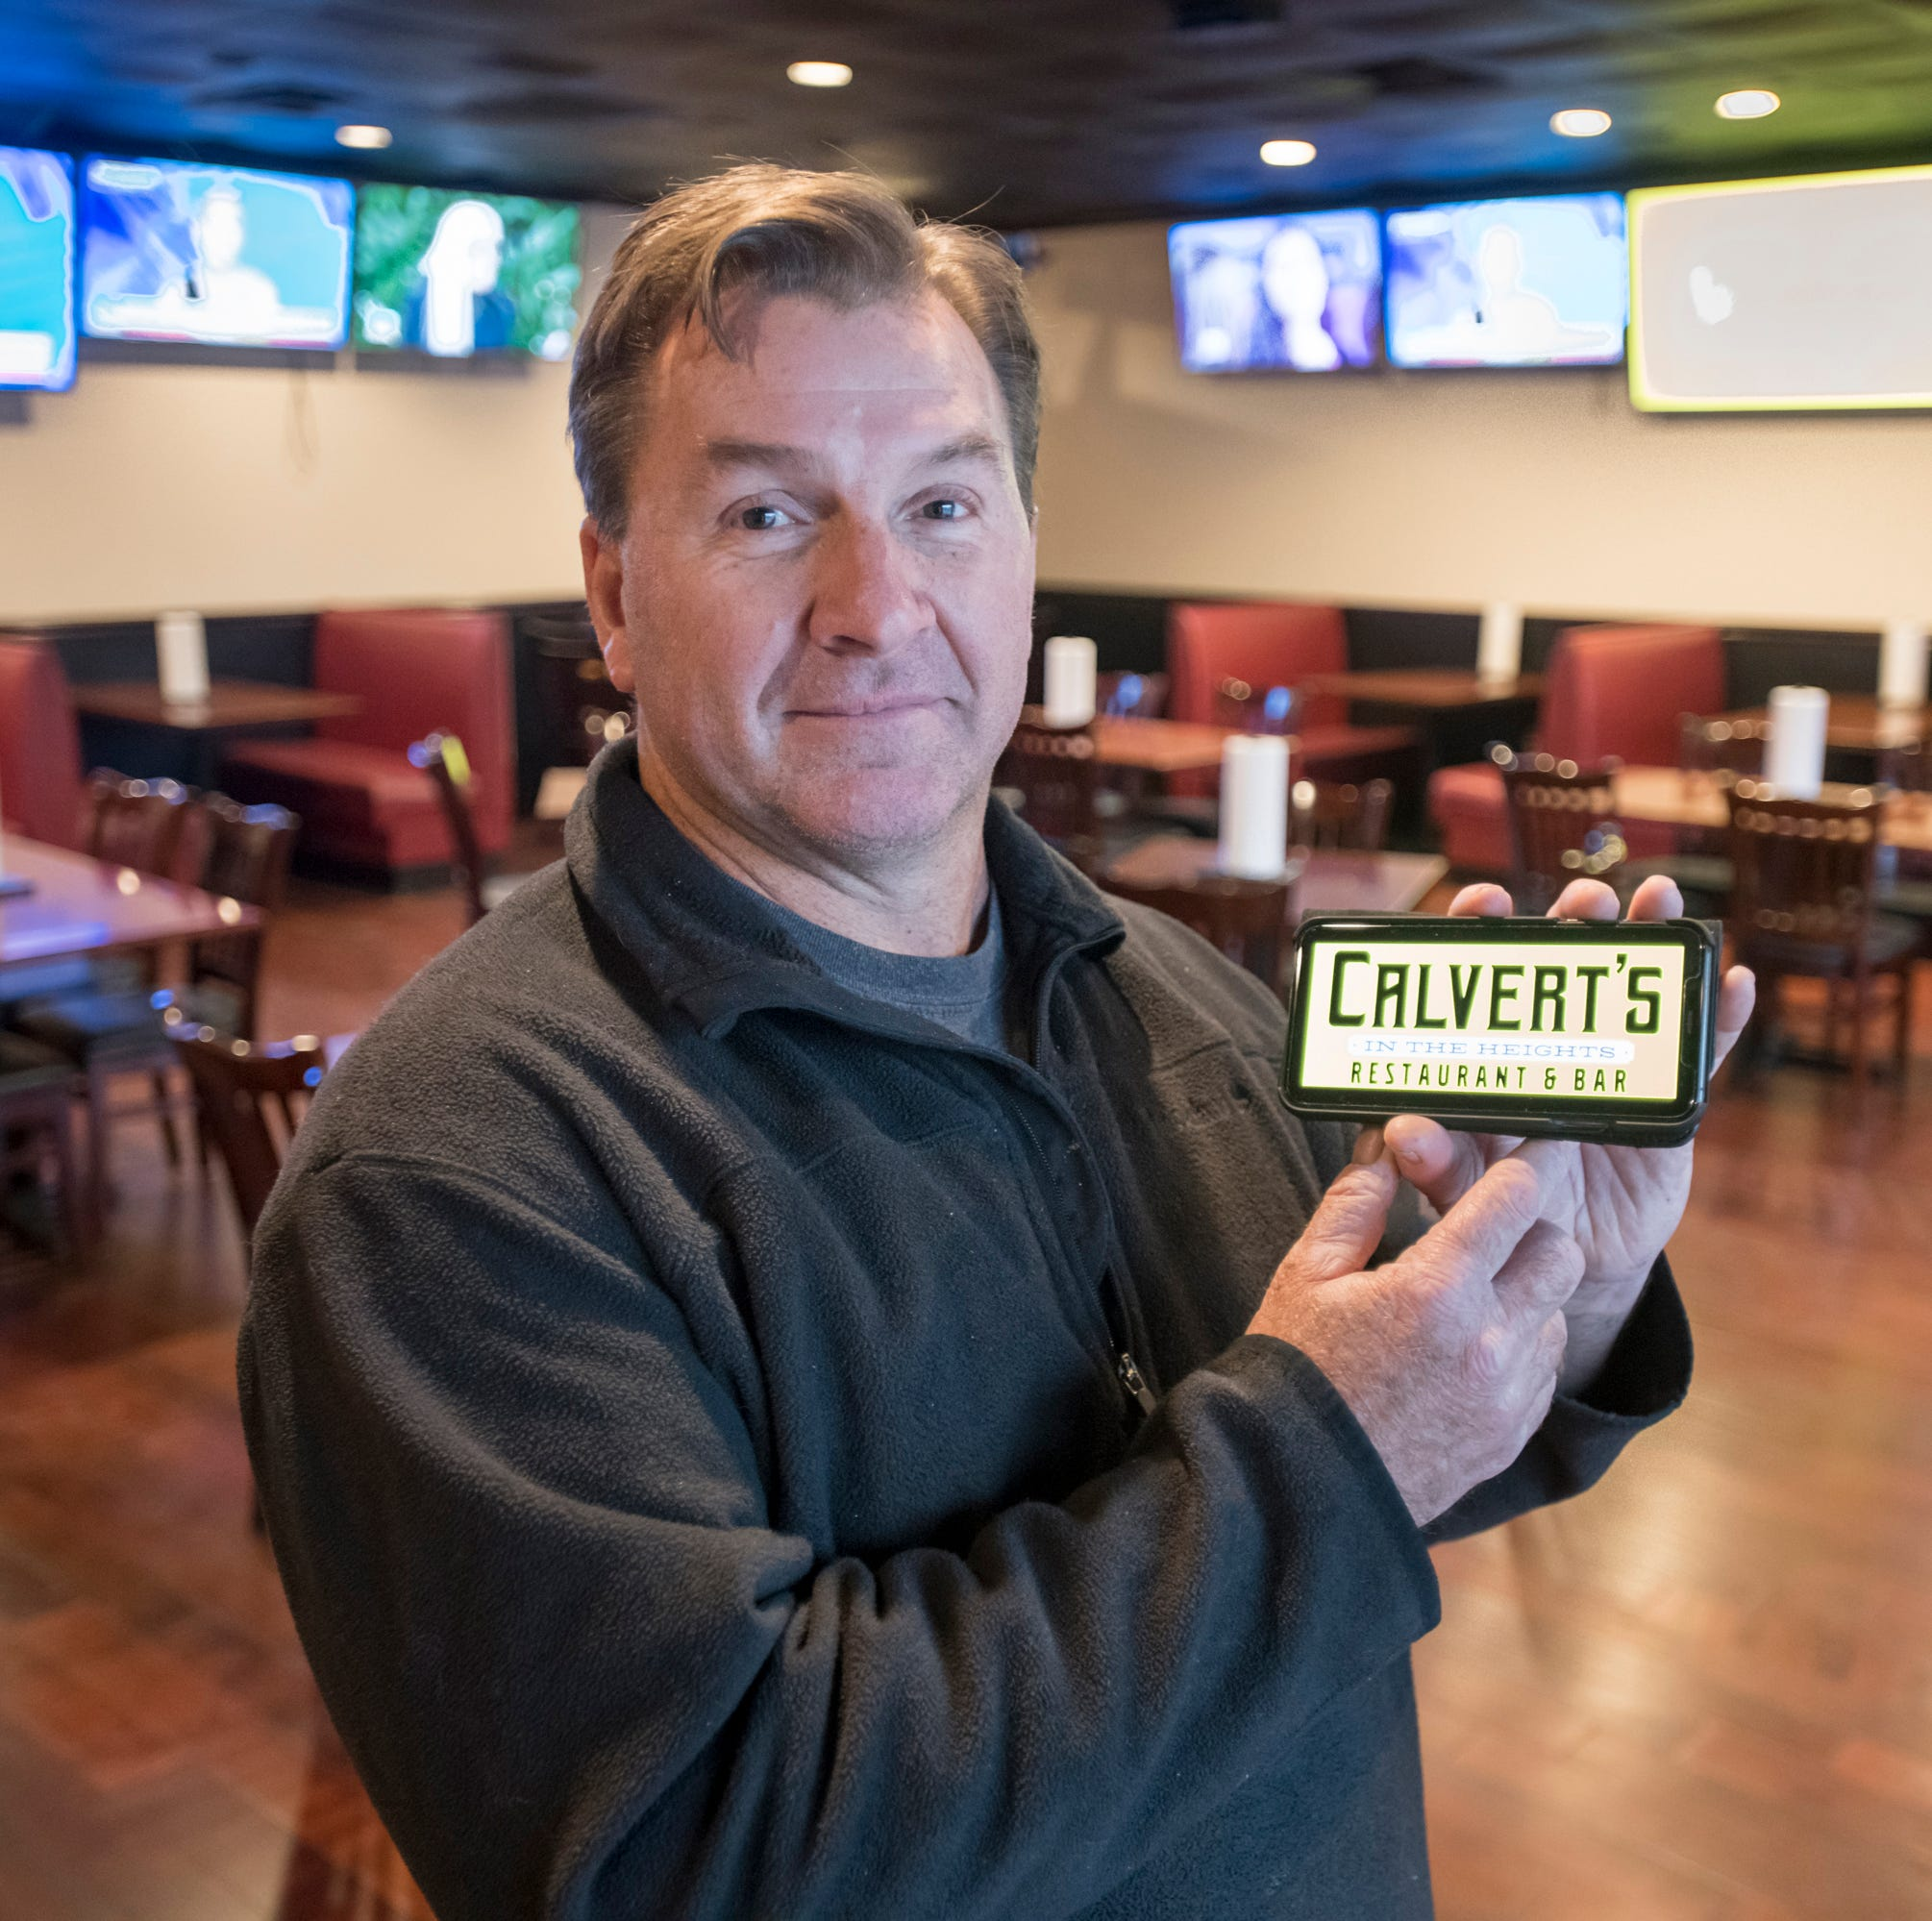 Calvert's in the Heights Restaurant & Bar co-owner and namesake Scott Calvert shows what the sign will look like when they open in a few weeks at the former location of Passage to India restaurant location on East Cervantes in Pensacola.